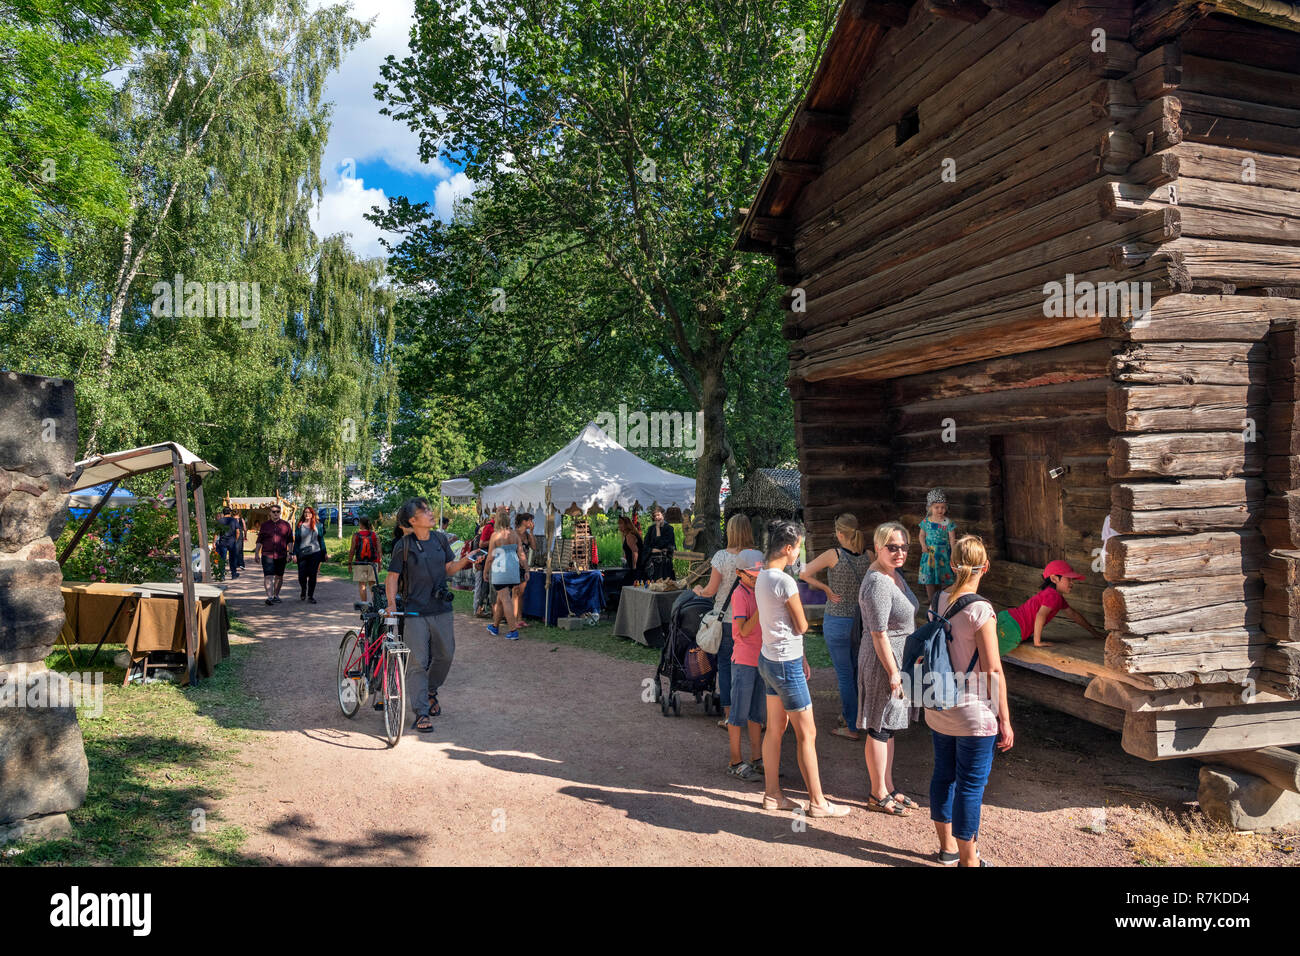 Stalls in the grounds of Turku Castle (Turun Linna) during the Medieval Tournament in July 2018, Turku, Finland - Stock Image